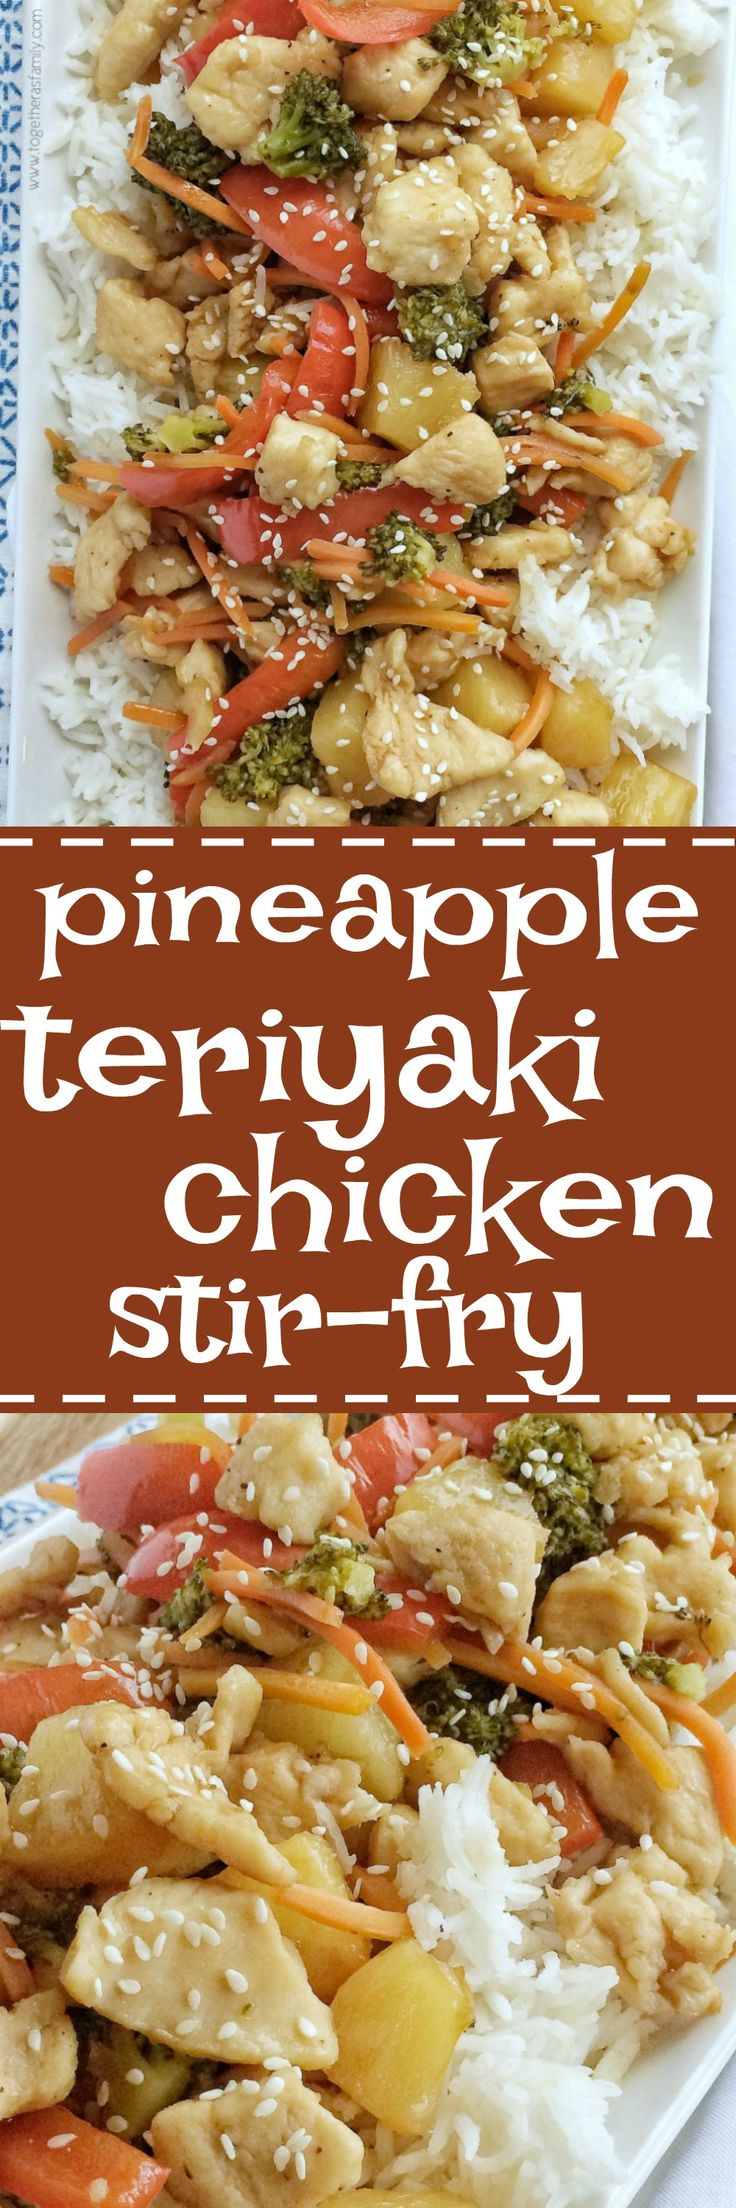 Vegetables and chicken simmer in a homemade teriyaki sauce that is so simple to make. Serve over some rice and dinner is ready. Pineapple teriyaki chicken stir-fry is a 30 minute meal that is bursting with flavor and cooks in one pan on the stove top!